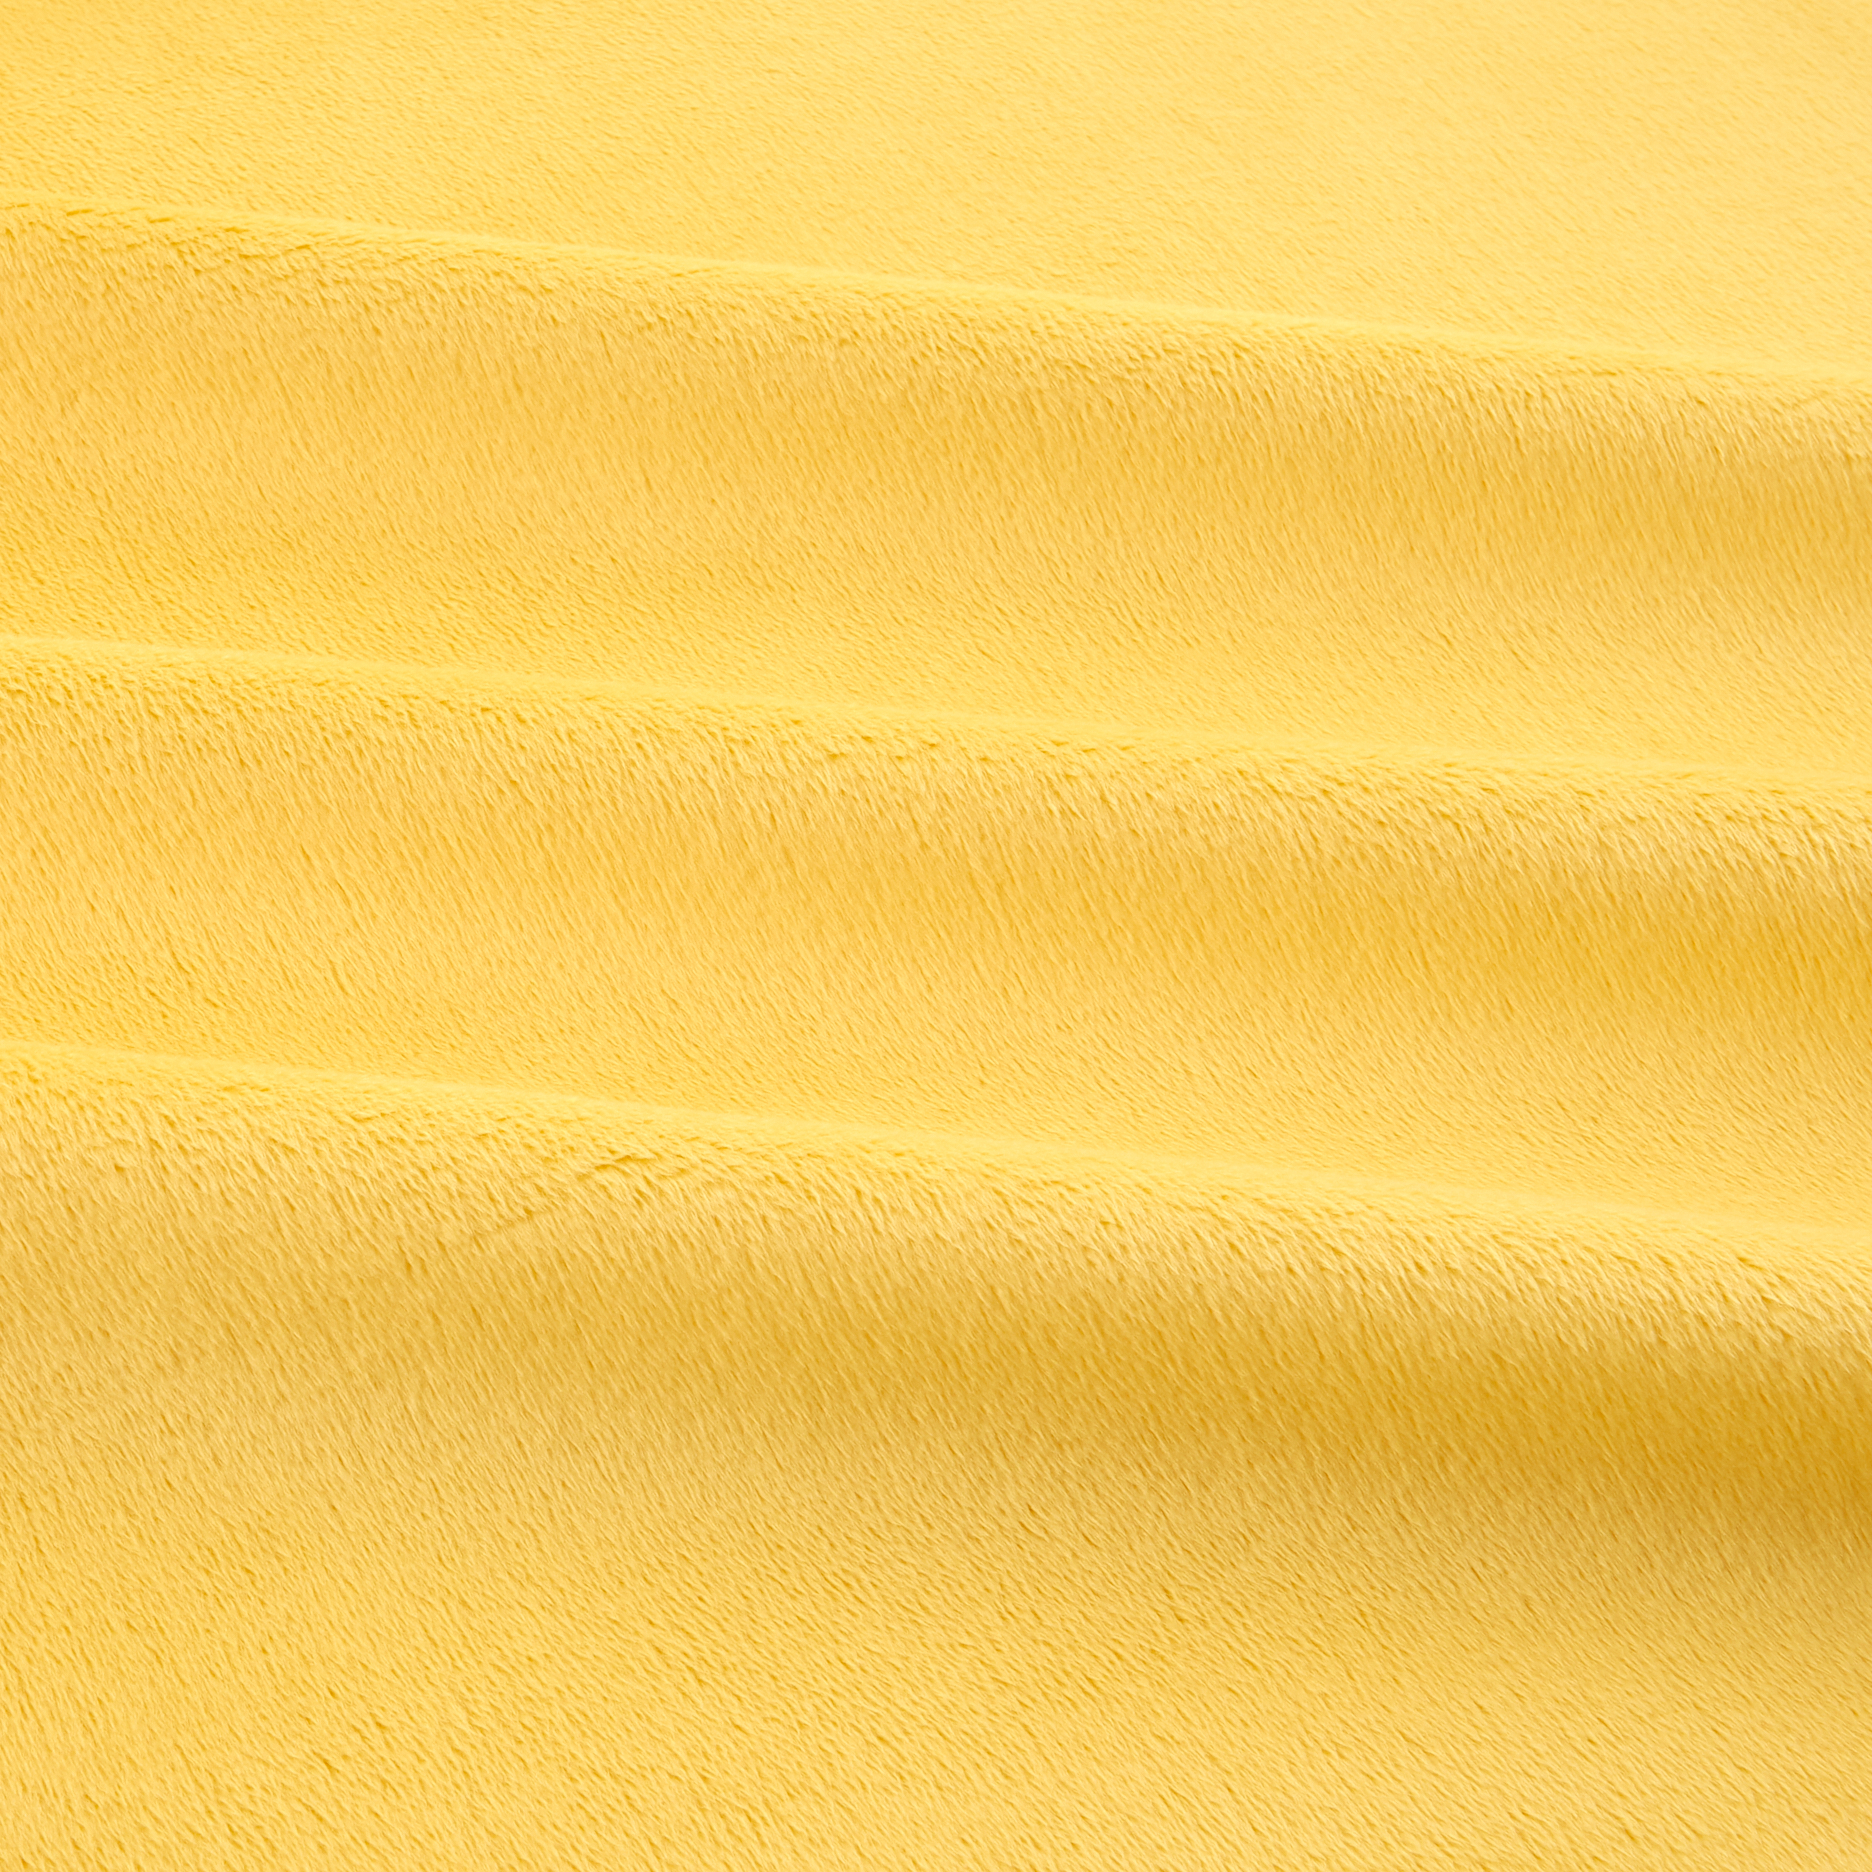 Shannon_Minky_Solid_Cuddle_3_Sunshine_Fabric